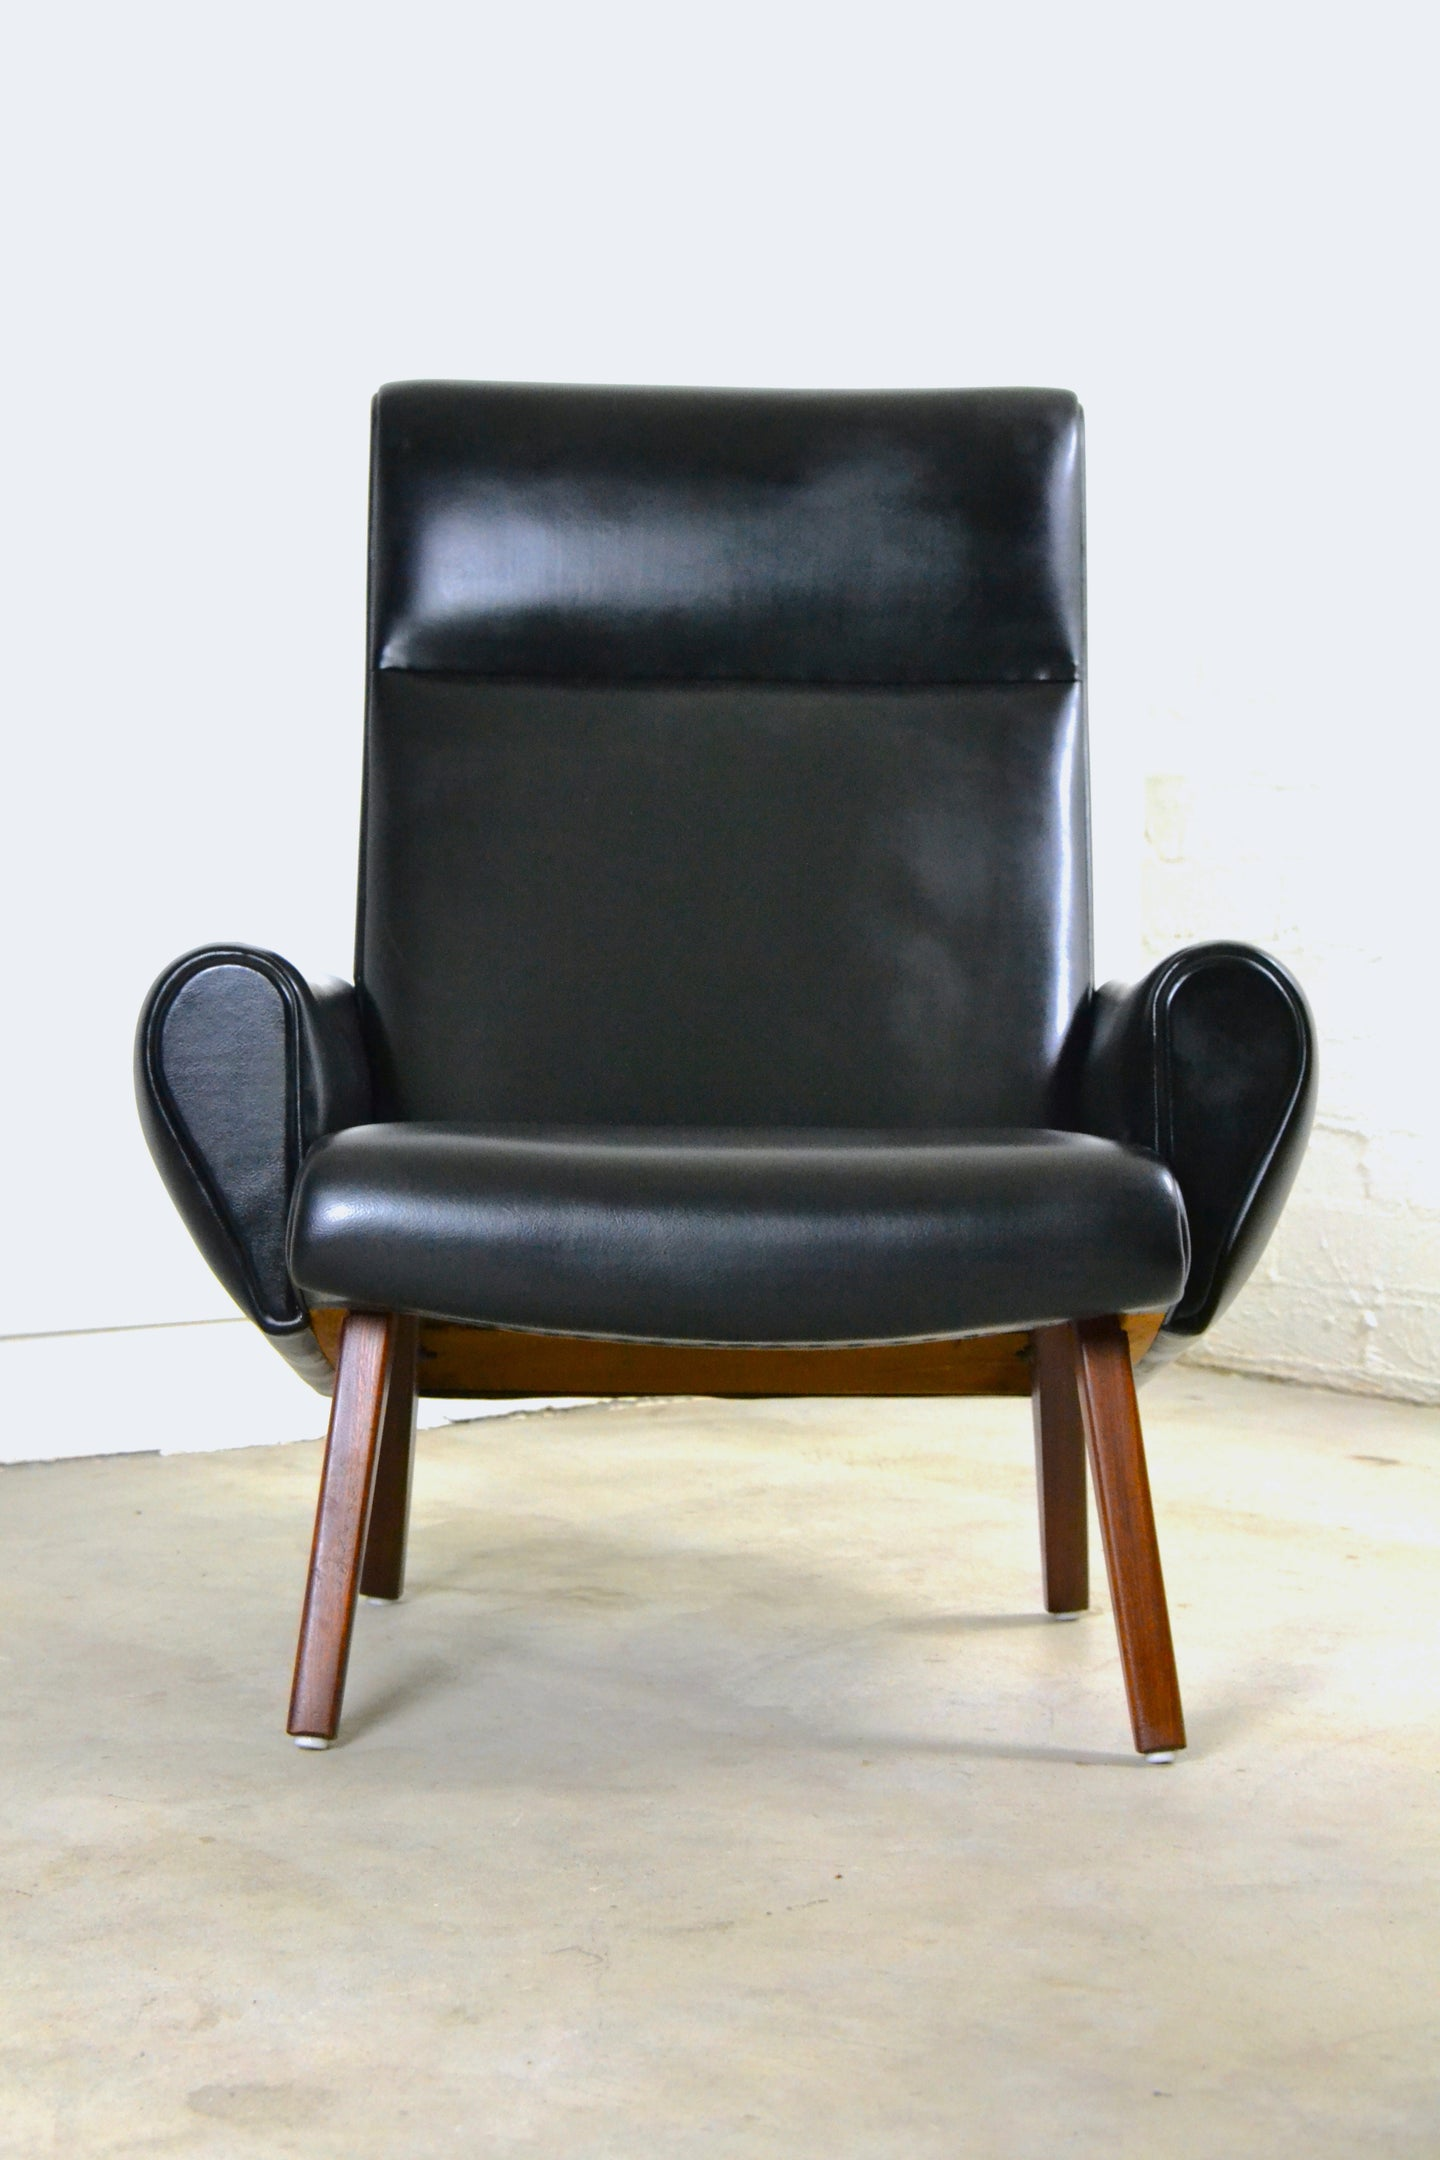 Danish 1960s Armchair - Leatherette & Rosewood, Illum Wikkelso for Soren Willadsen, Denmark, Edwin Fox Furniture Melbourne furniture sales and restoration service,